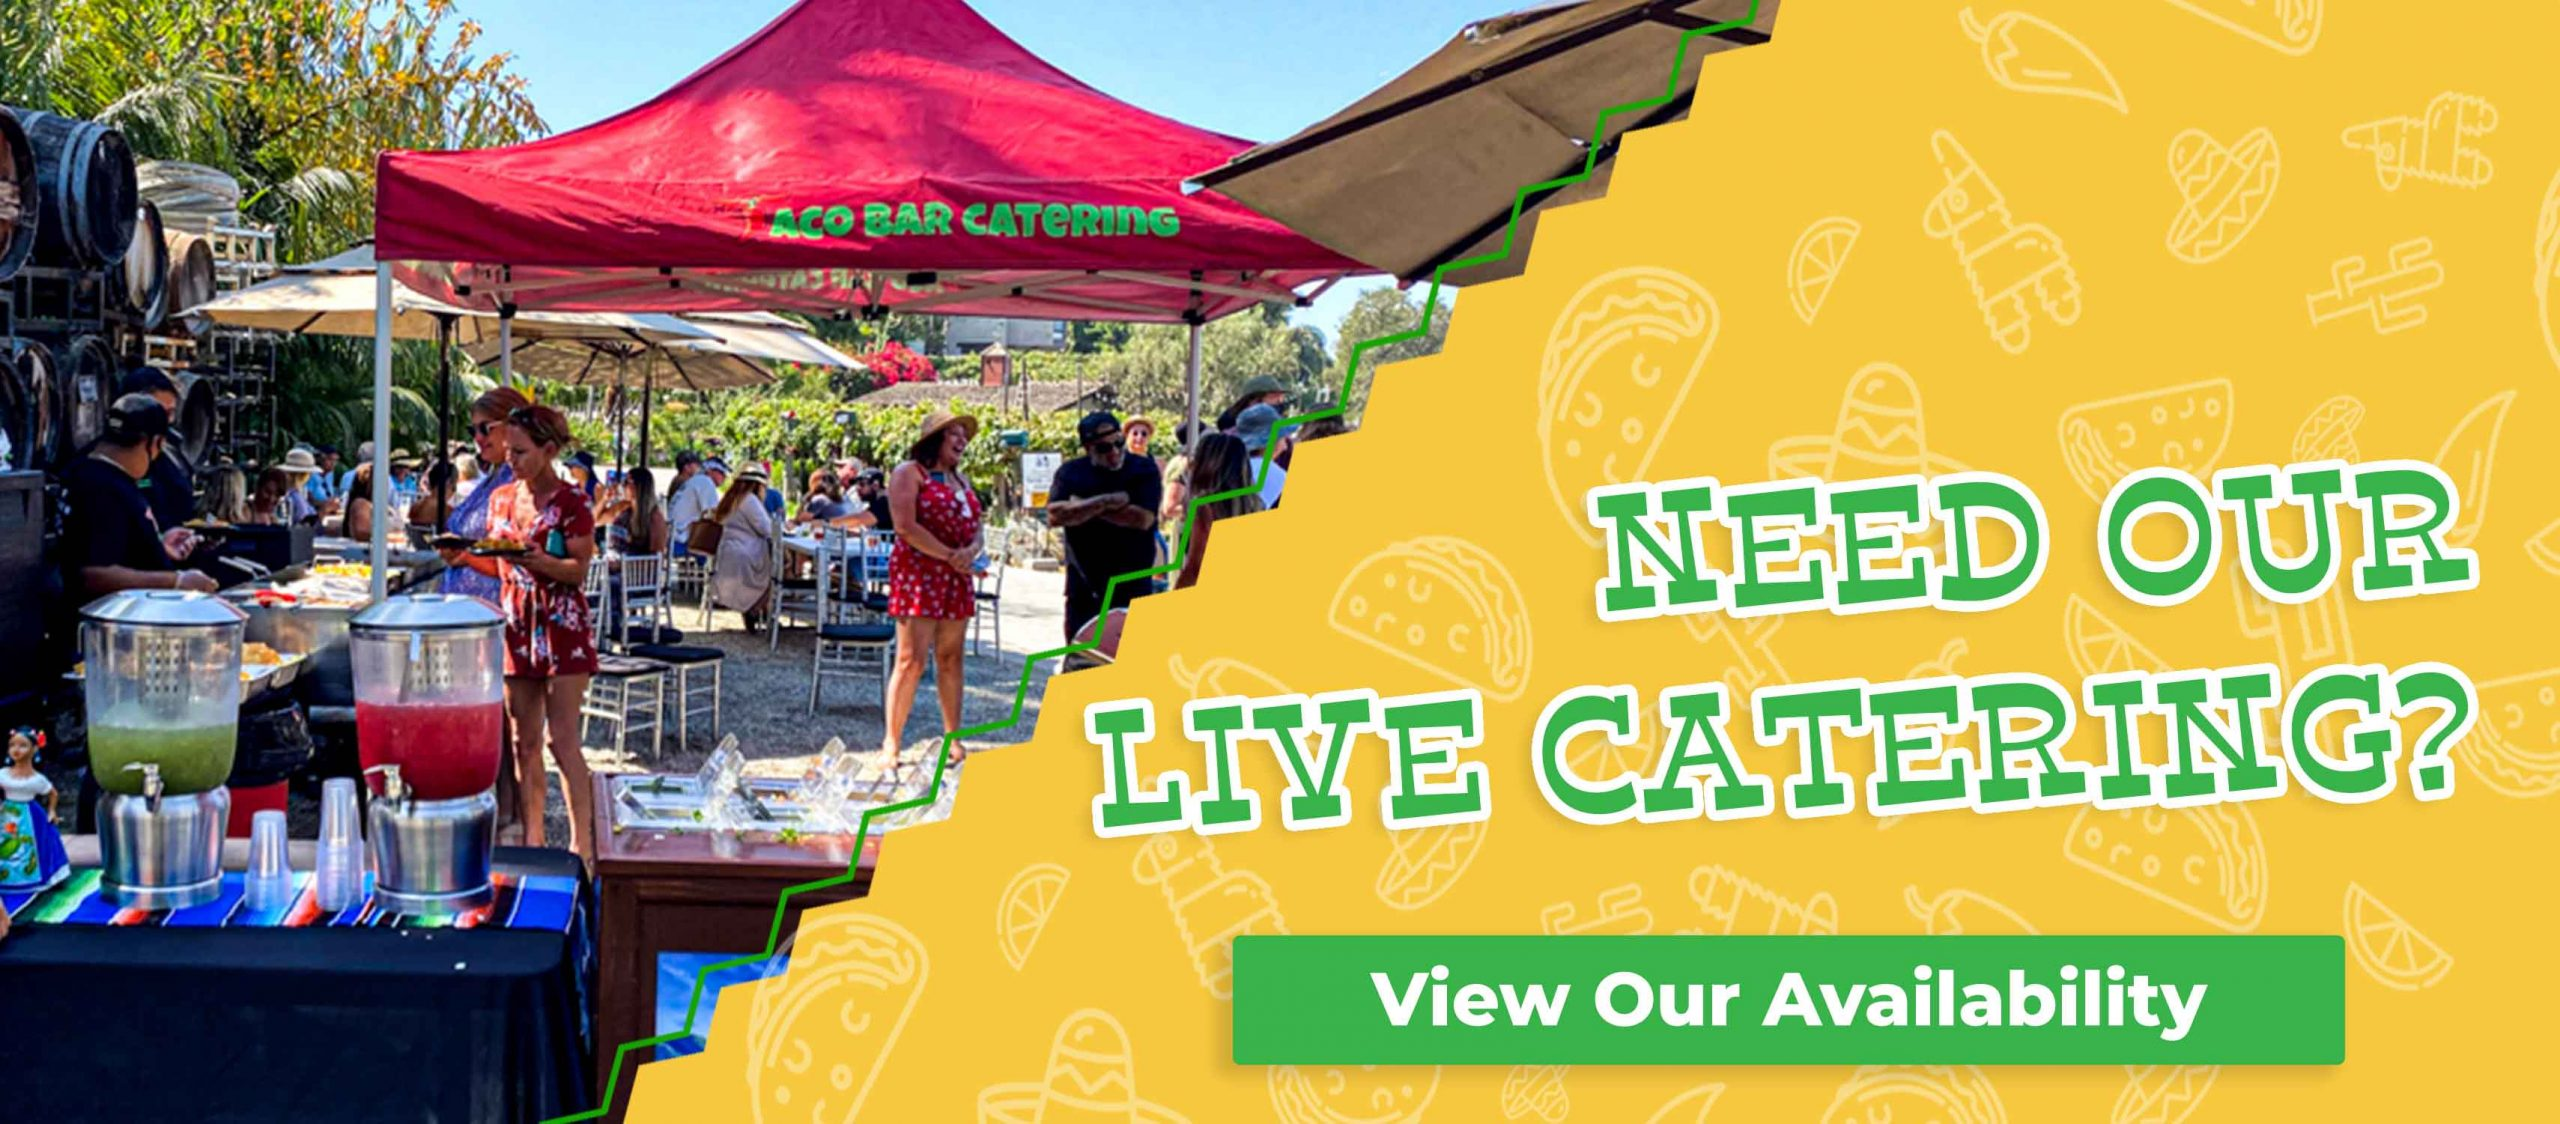 View Our Live Taco Guy Availability